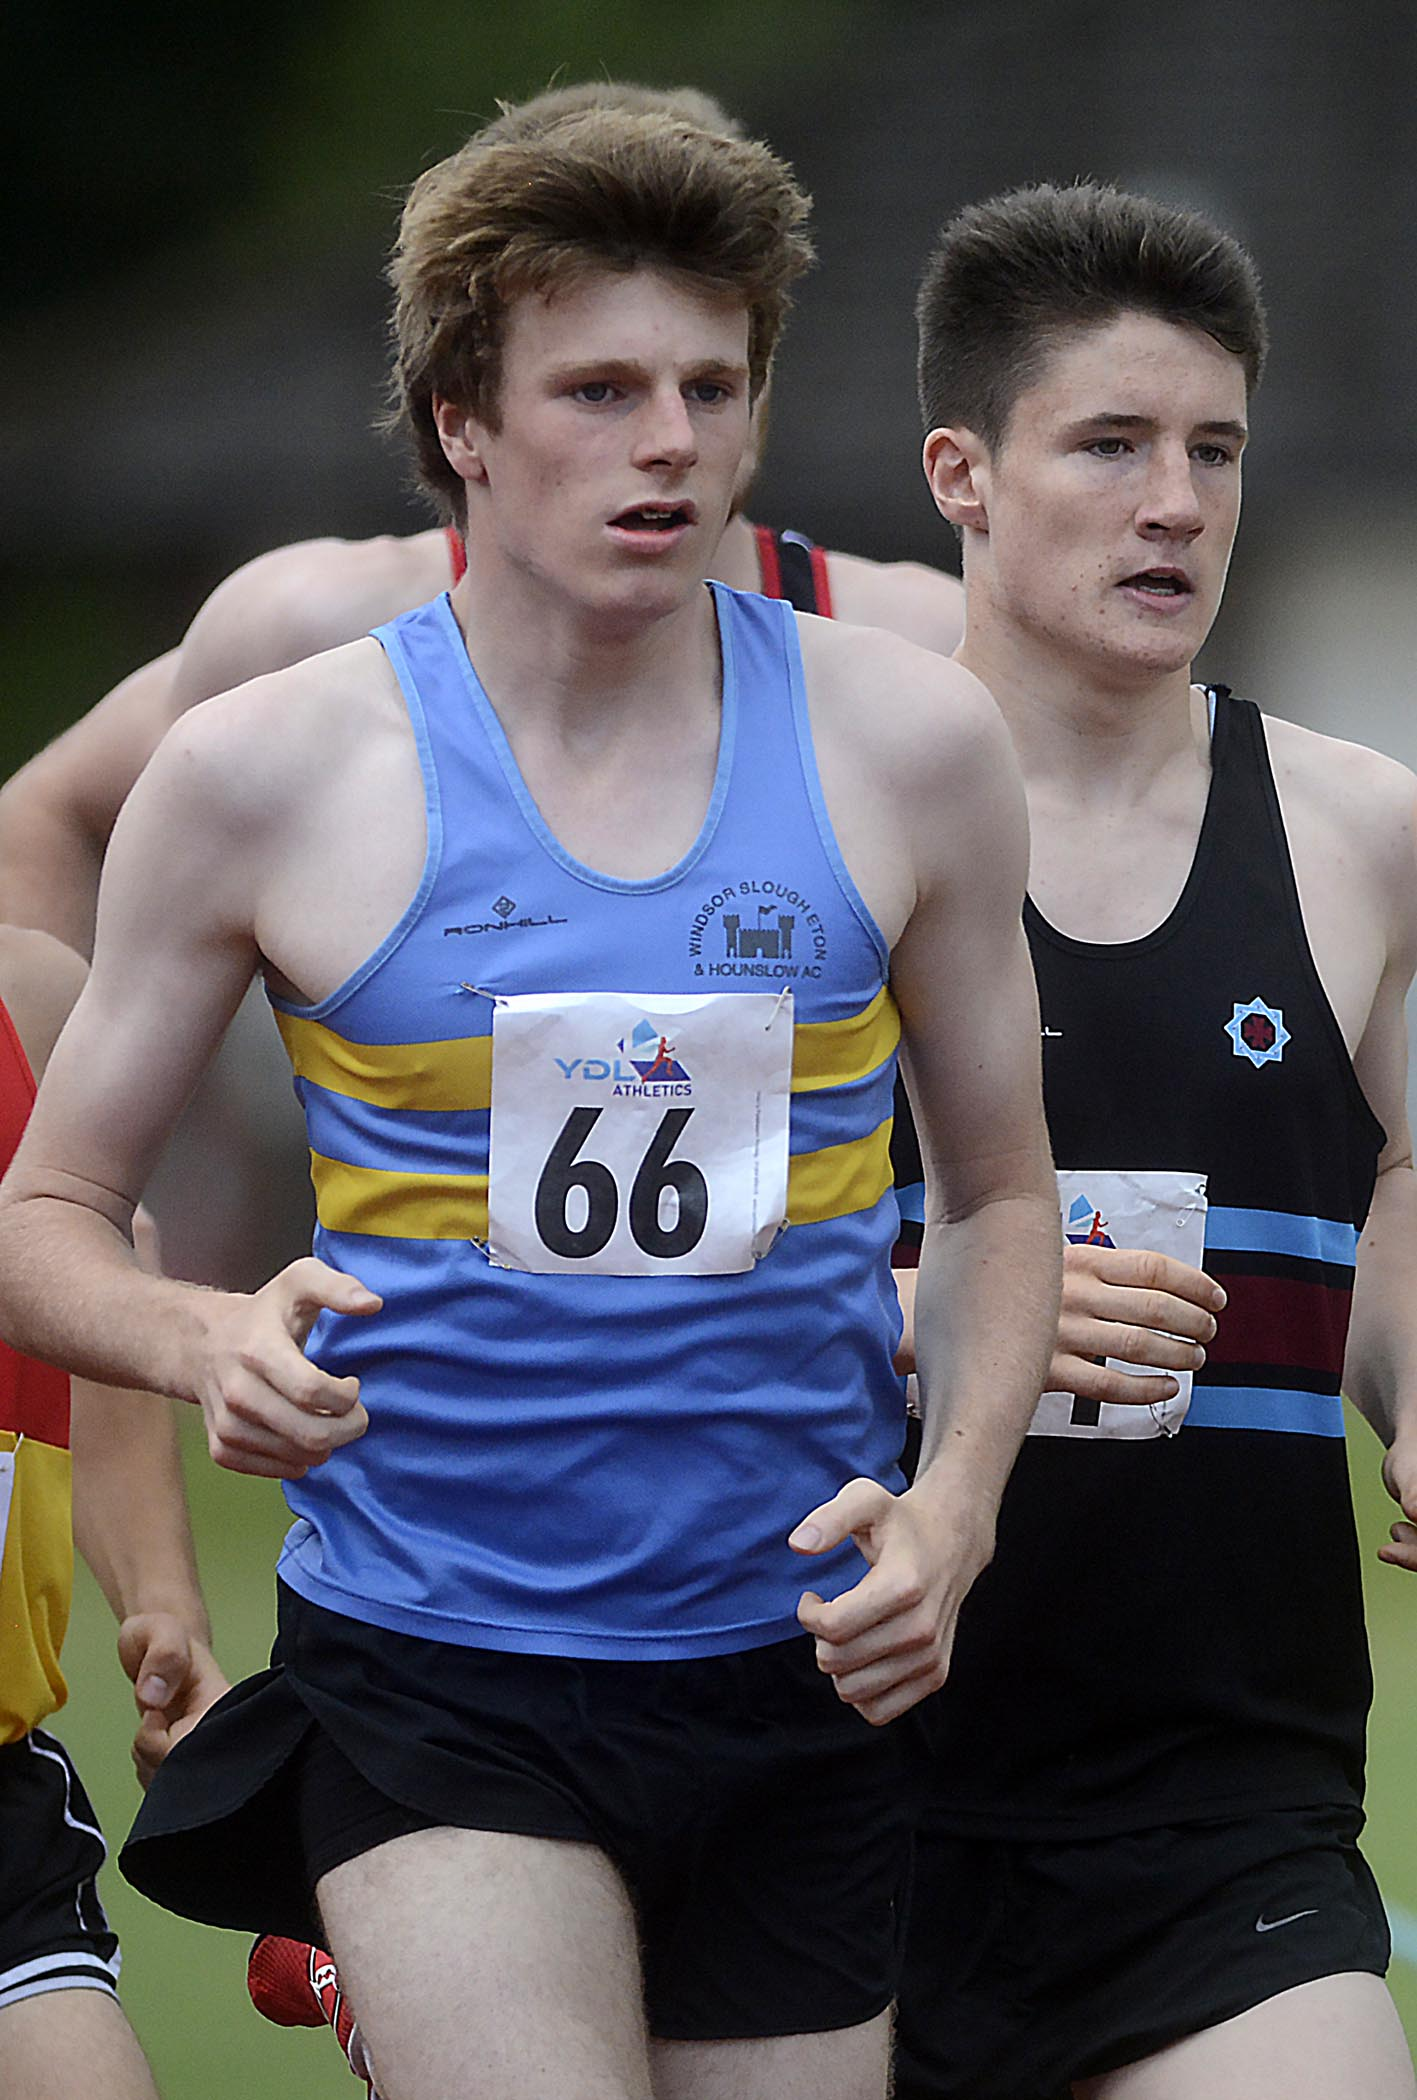 WSEH Athletics Club star Jack Goddard (66) won a gold medal in the Under-20 race at the Berkshire Cross Country Championships in Maidenhead.